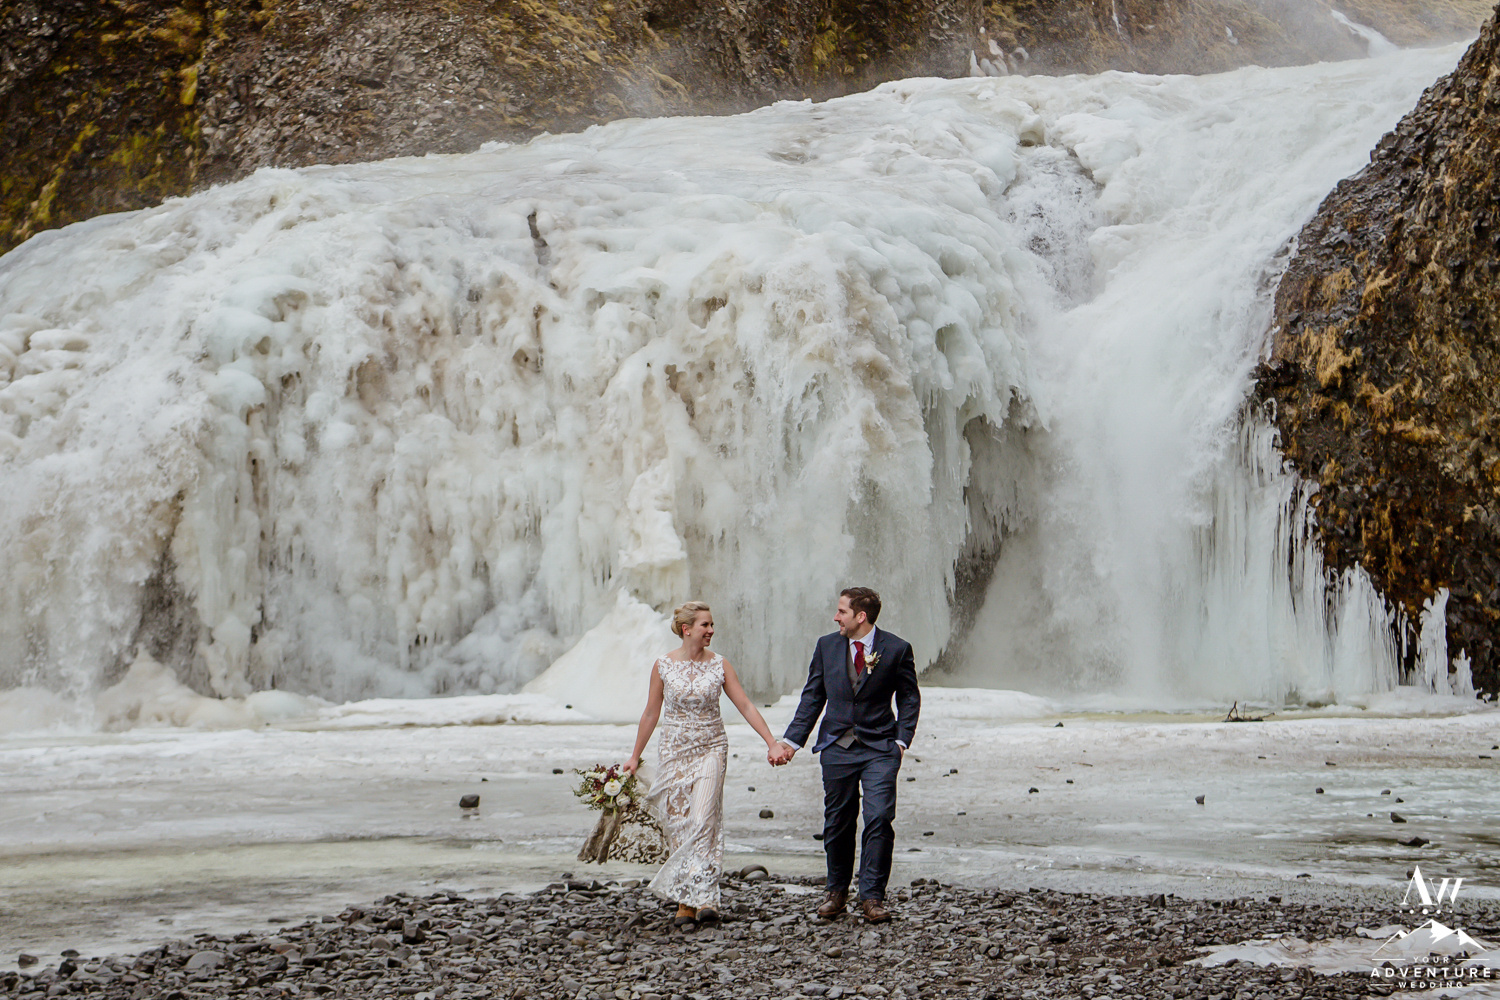 Couple walking in front of a waterfall during their Iceland Elopement